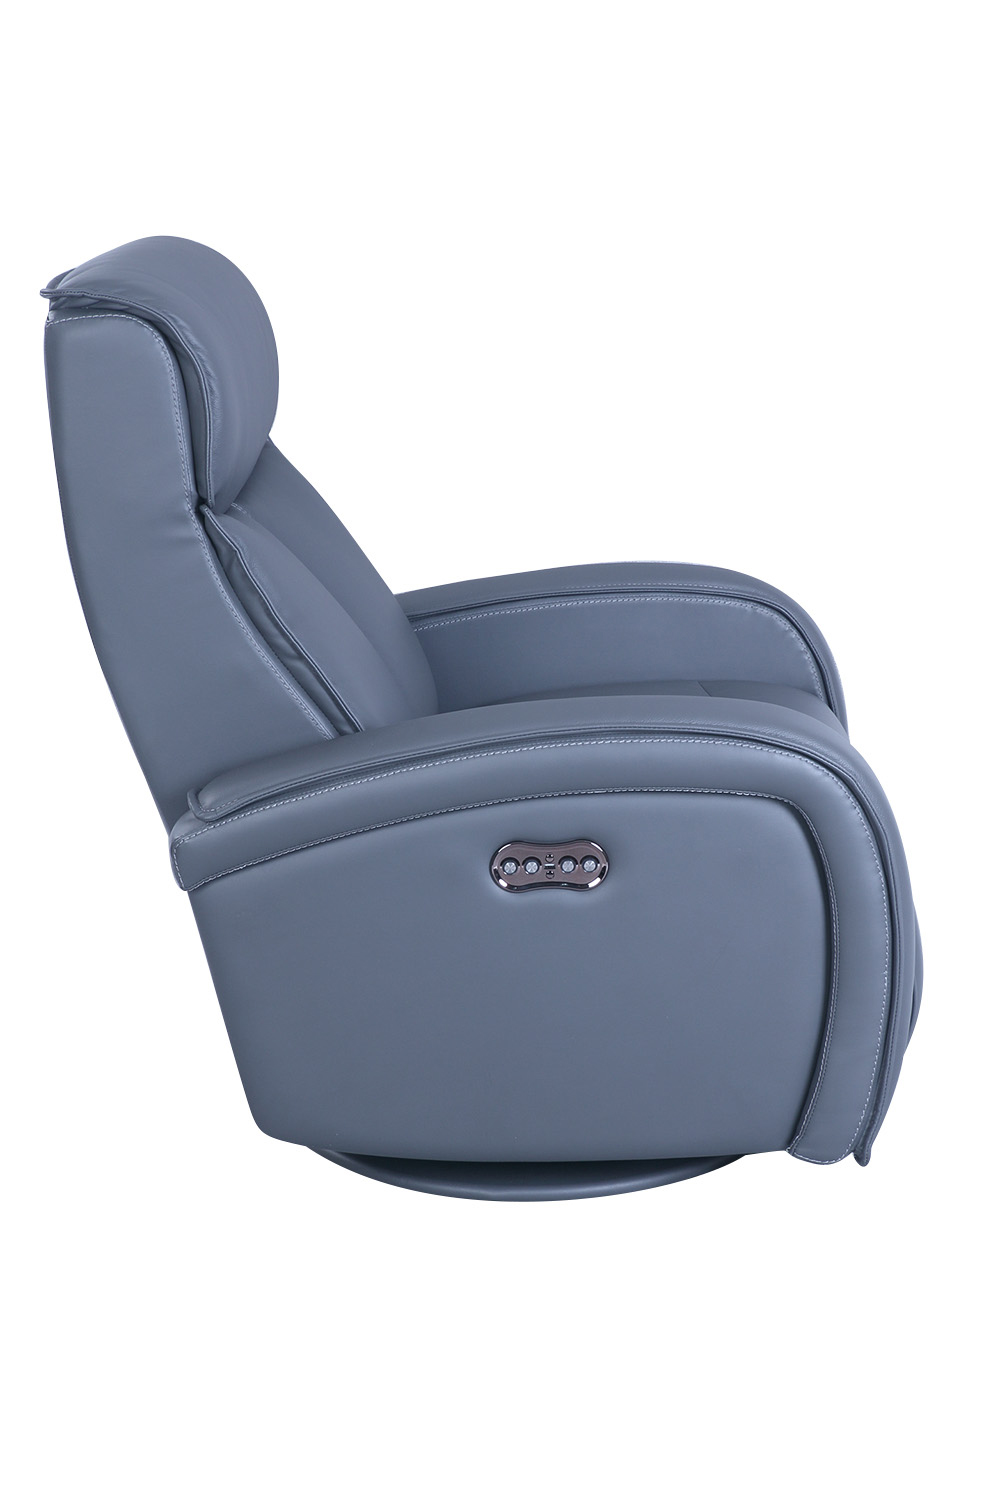 Barcalounger Nico Swivel Glider Power Recliner Chair with Power Head Rest - Marlene Gray/Leather Match